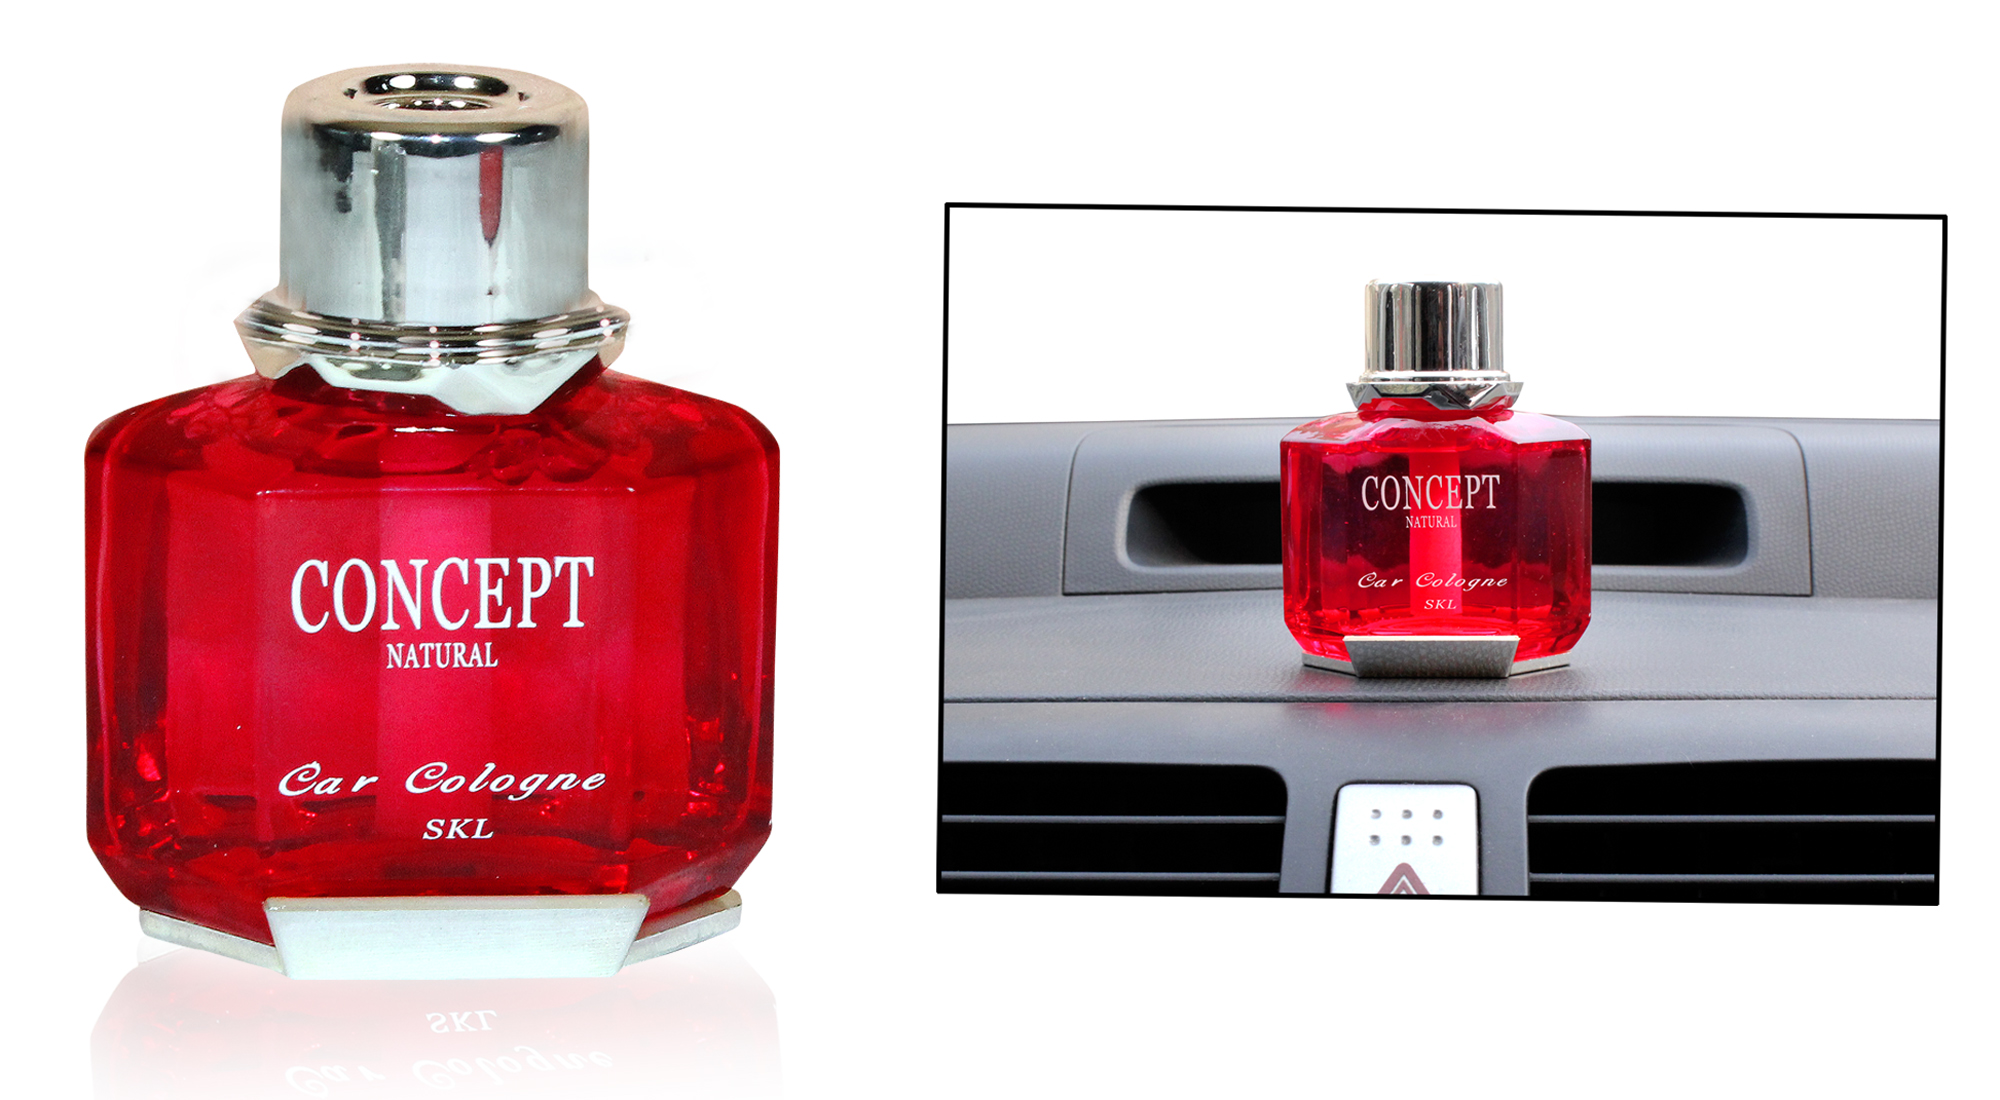 concept-car-air-freshener-perfume-red-